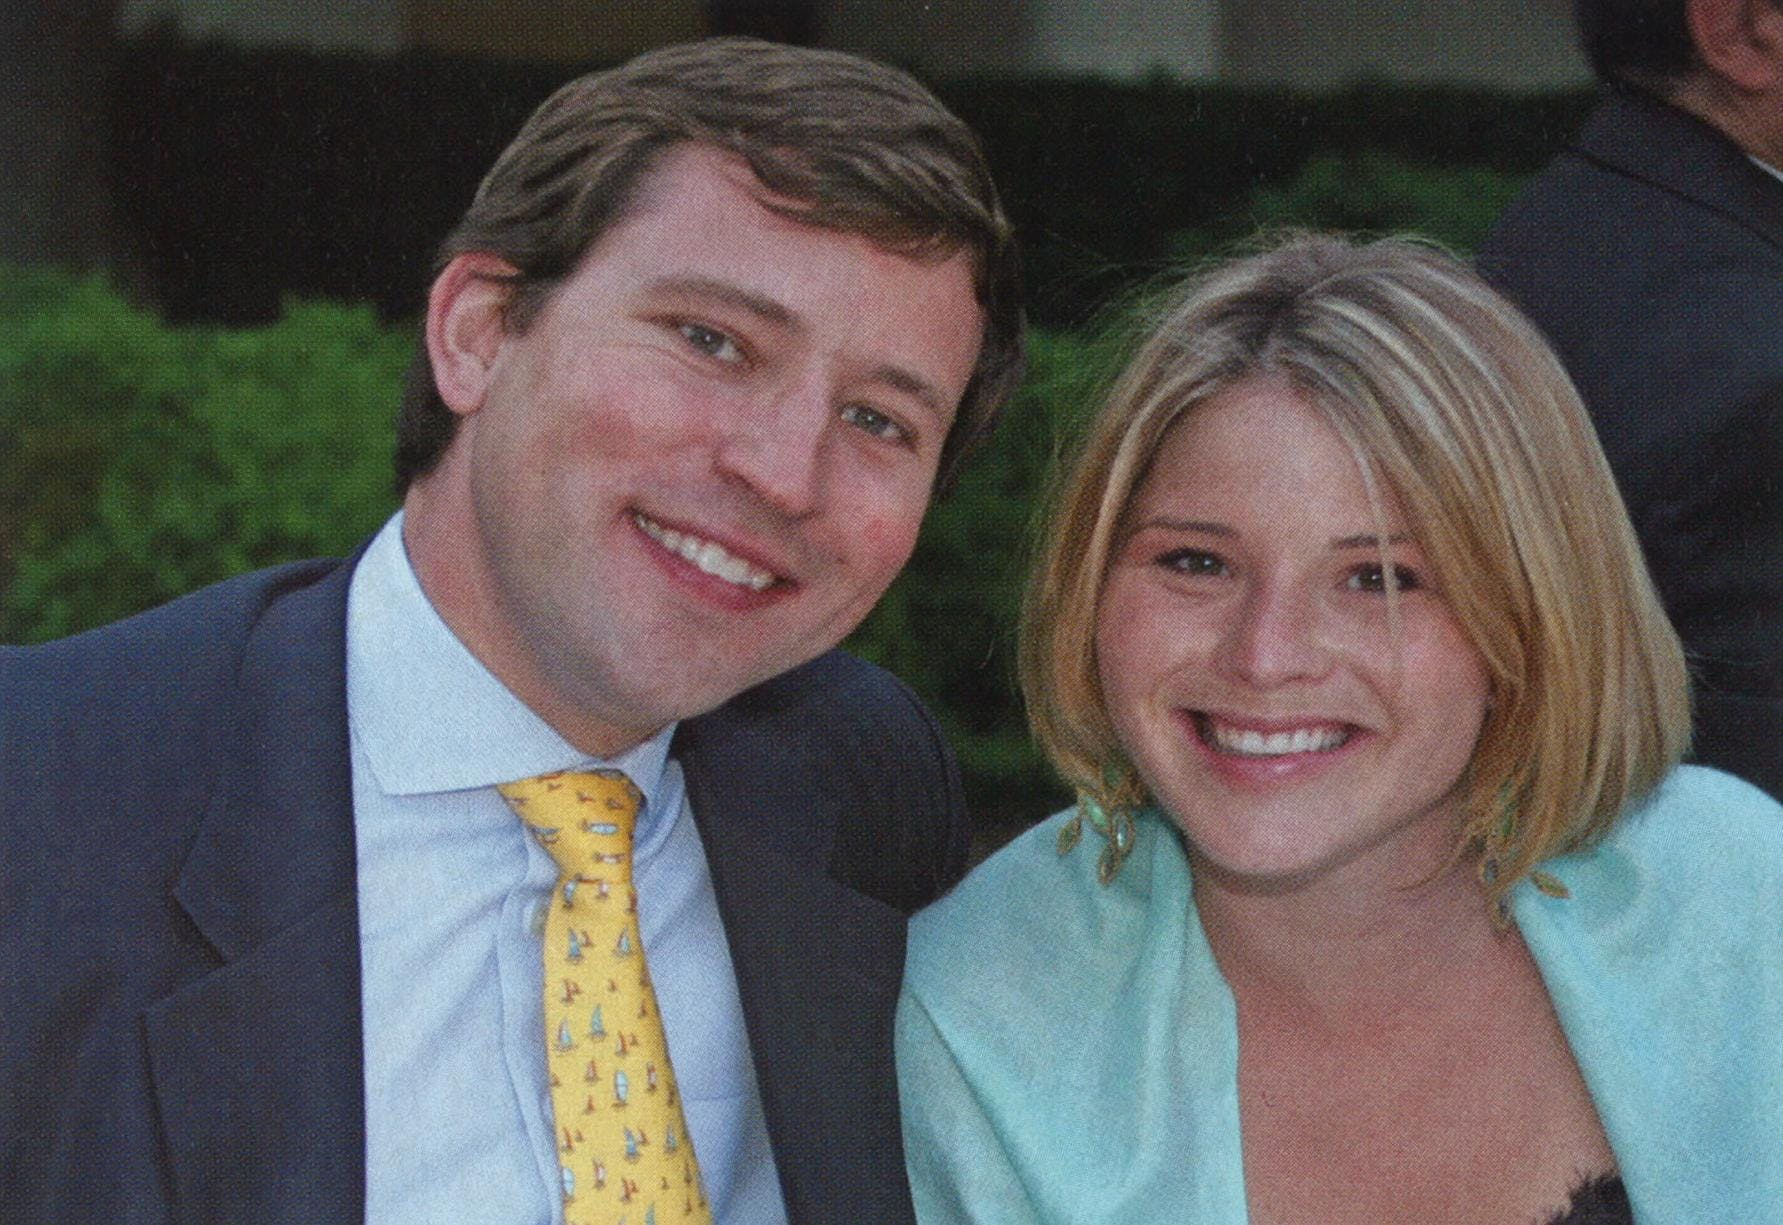 Jenna with her fiance, Henry Hager, in 2006.